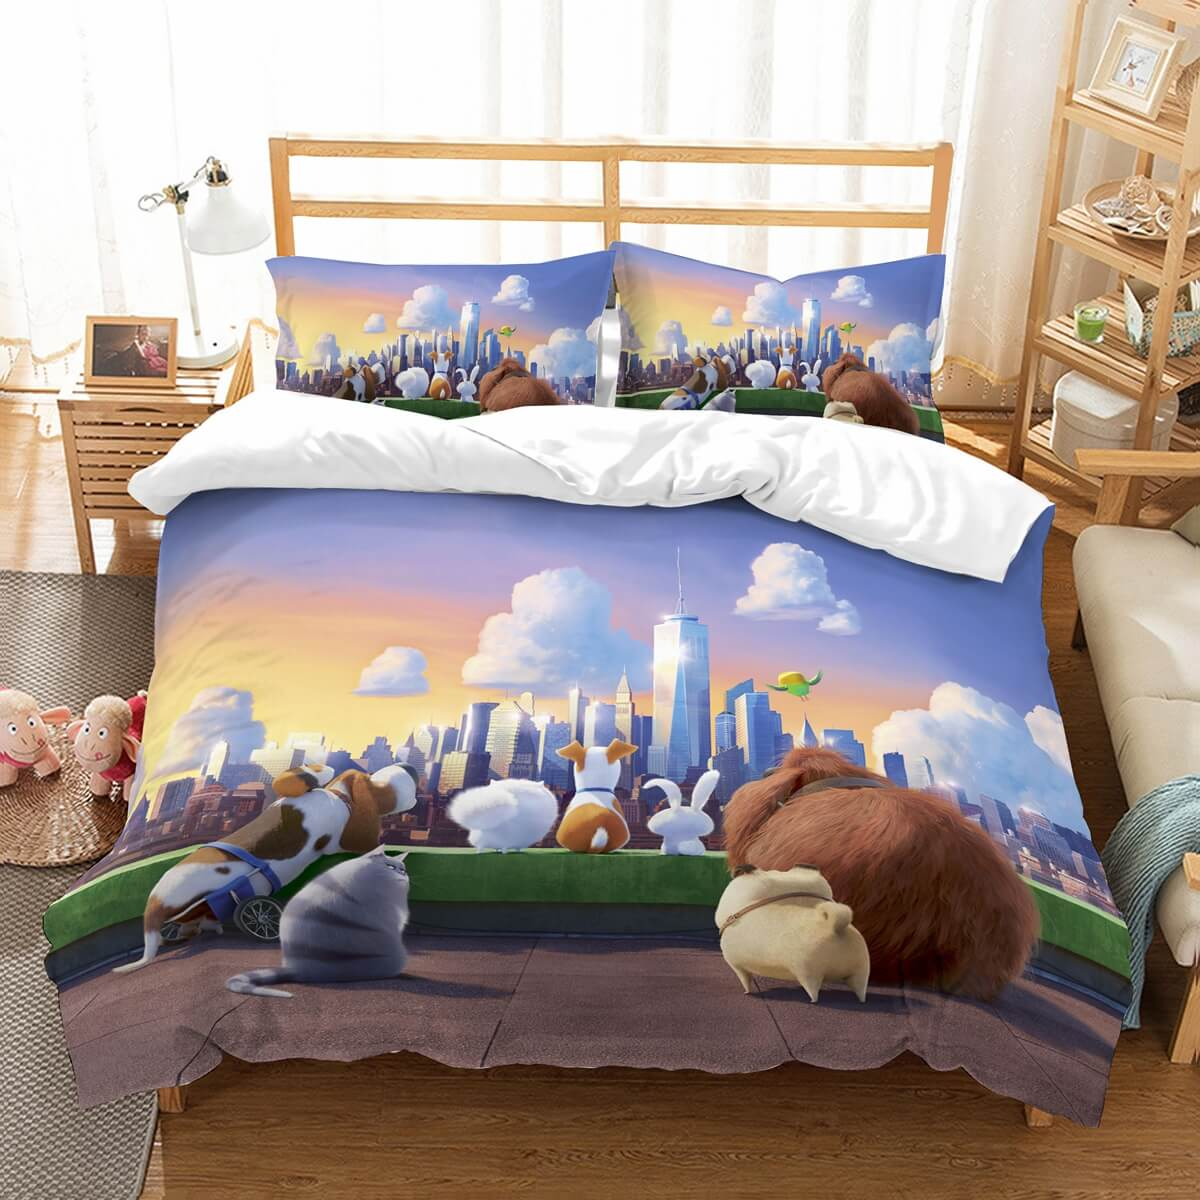 3D Customize The Secret Life Of Pets Bedding Set Duvet Cover Set Bedroom Set Bedlinen